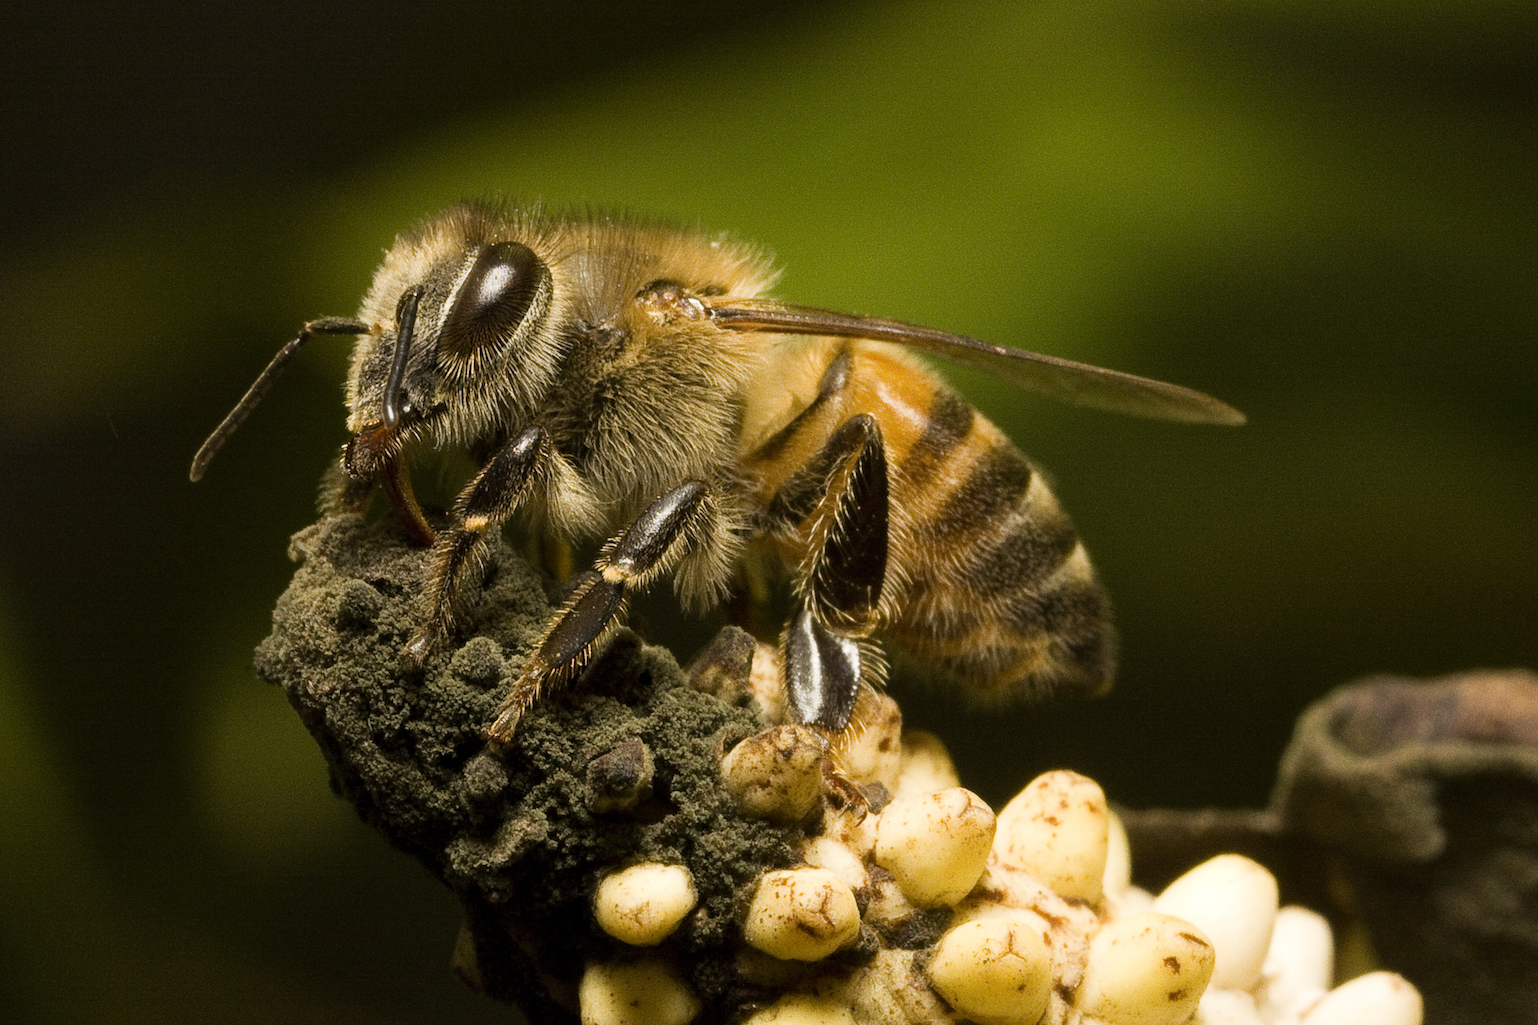 A new study of Africanized honey bees in Puerto Rico may explain why these killer bees have become more gentle over the last 30 years.